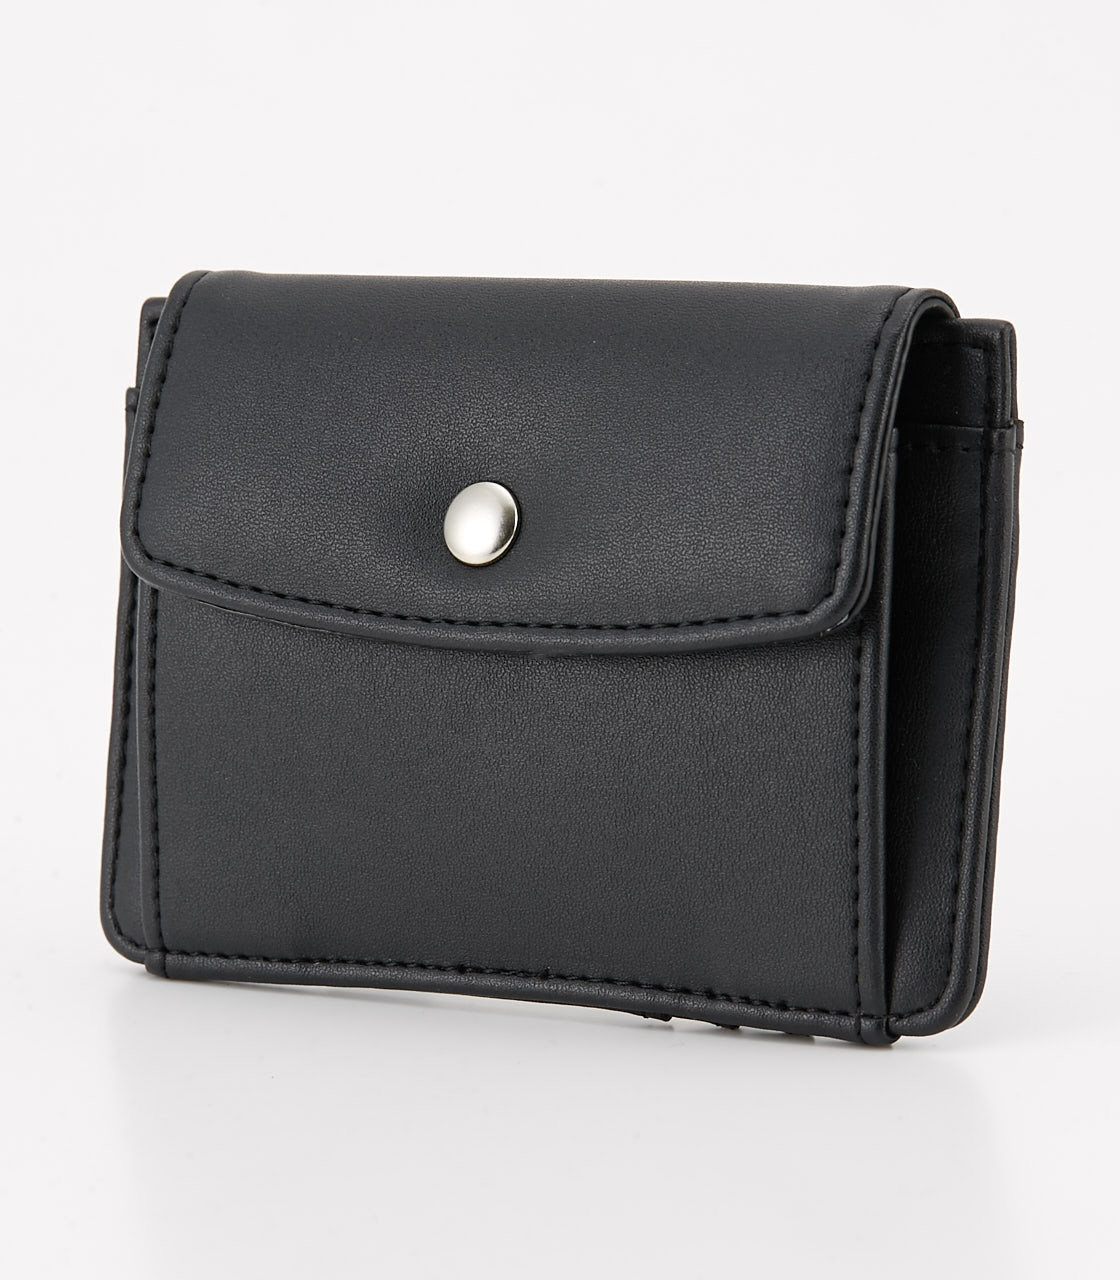 【AZUL BY MOUSSY】COIN+CARD PURSE 詳細画像 BLK 1